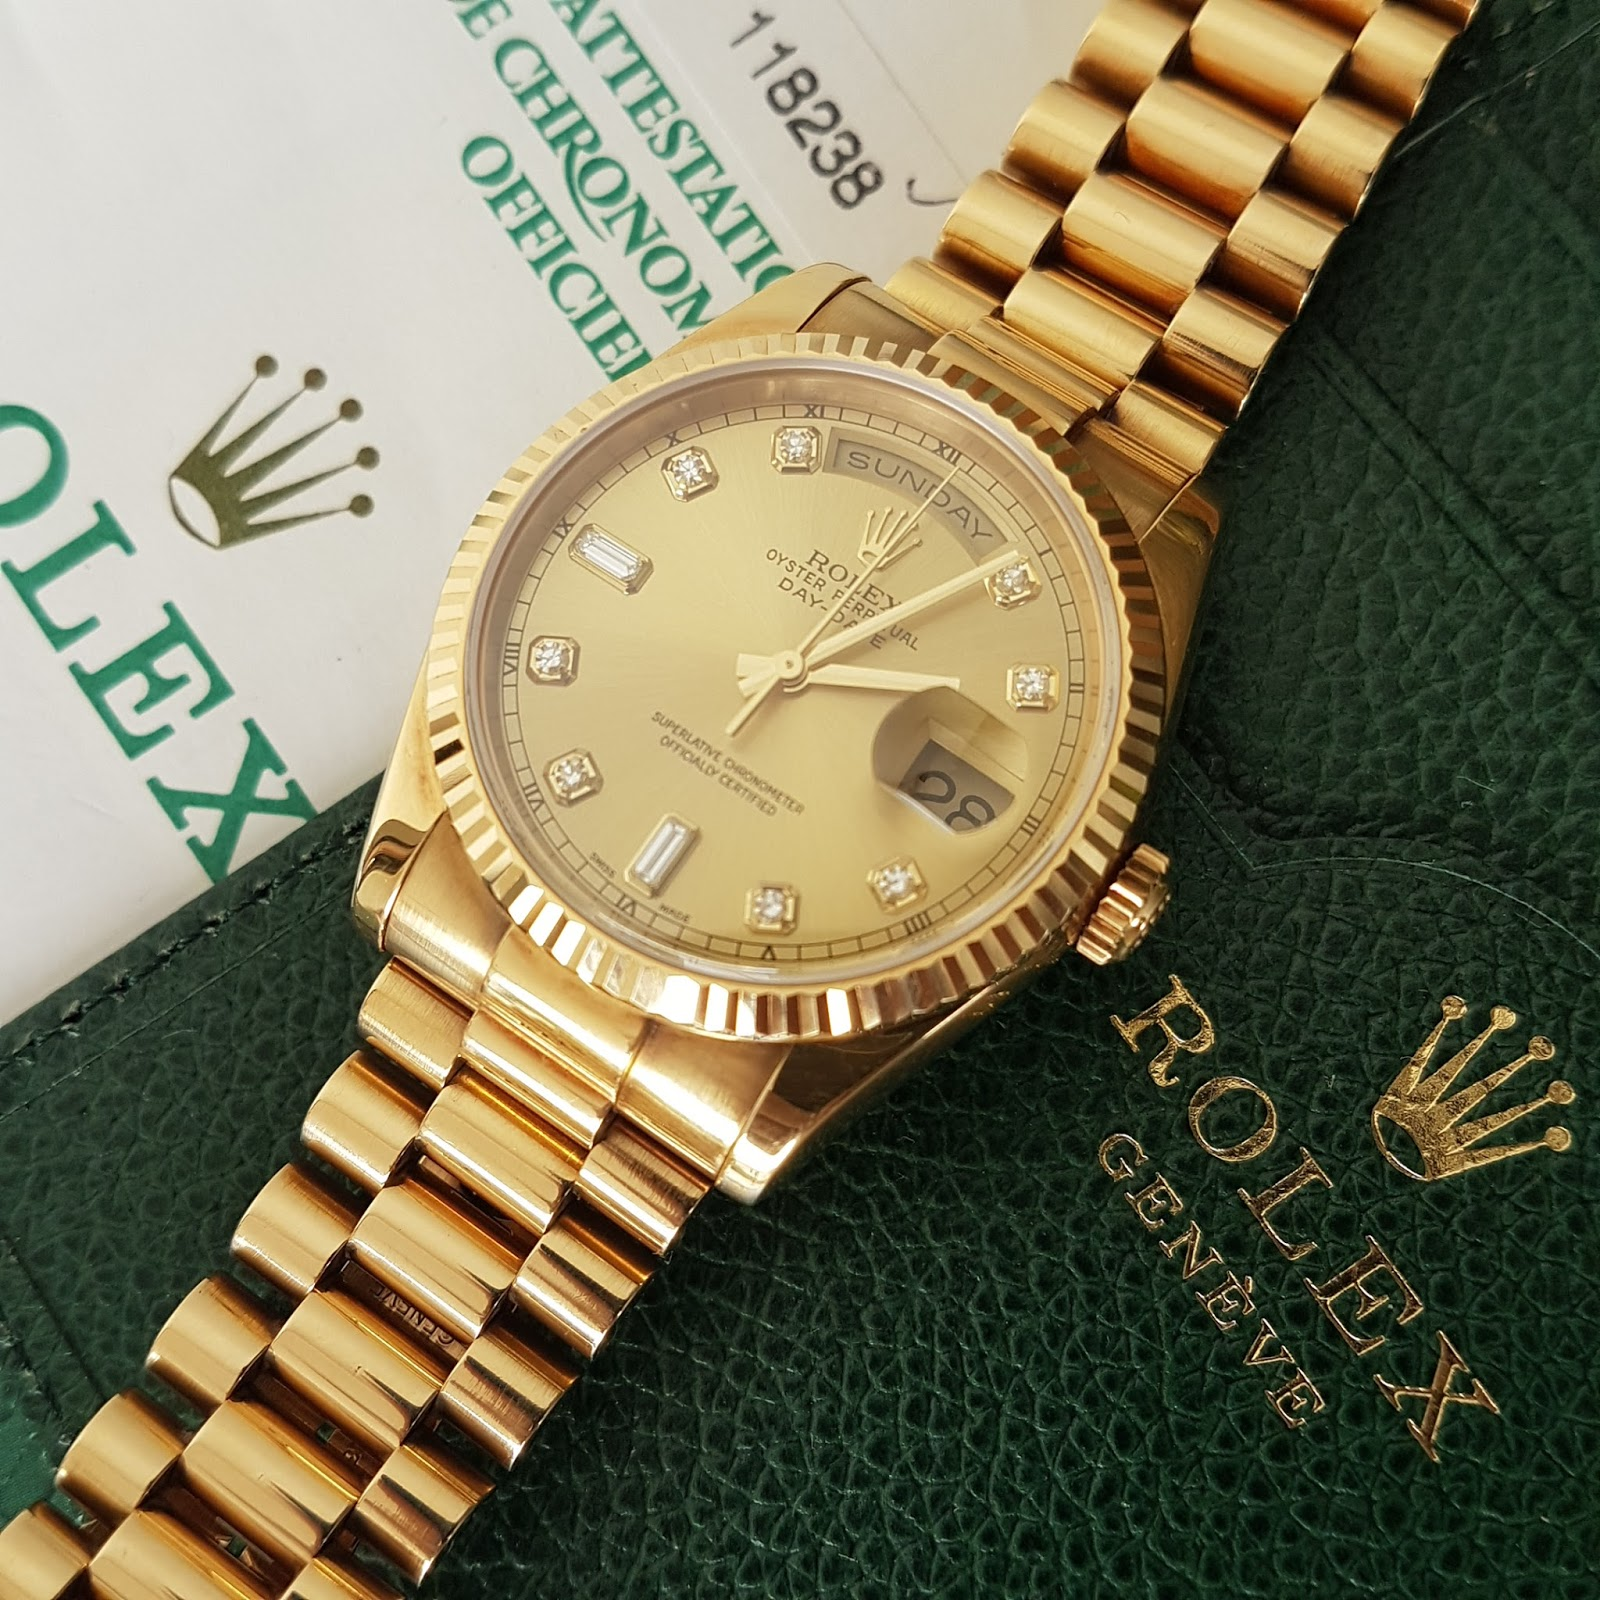 Jual Jam Rolex Gold Original Welcome To Tangan Pria Expedition 6631 Black Yellow Triple Time Bracelet 18k President Glass Sapphire Crystal Functions Day And Date Waterproof 10 Atm